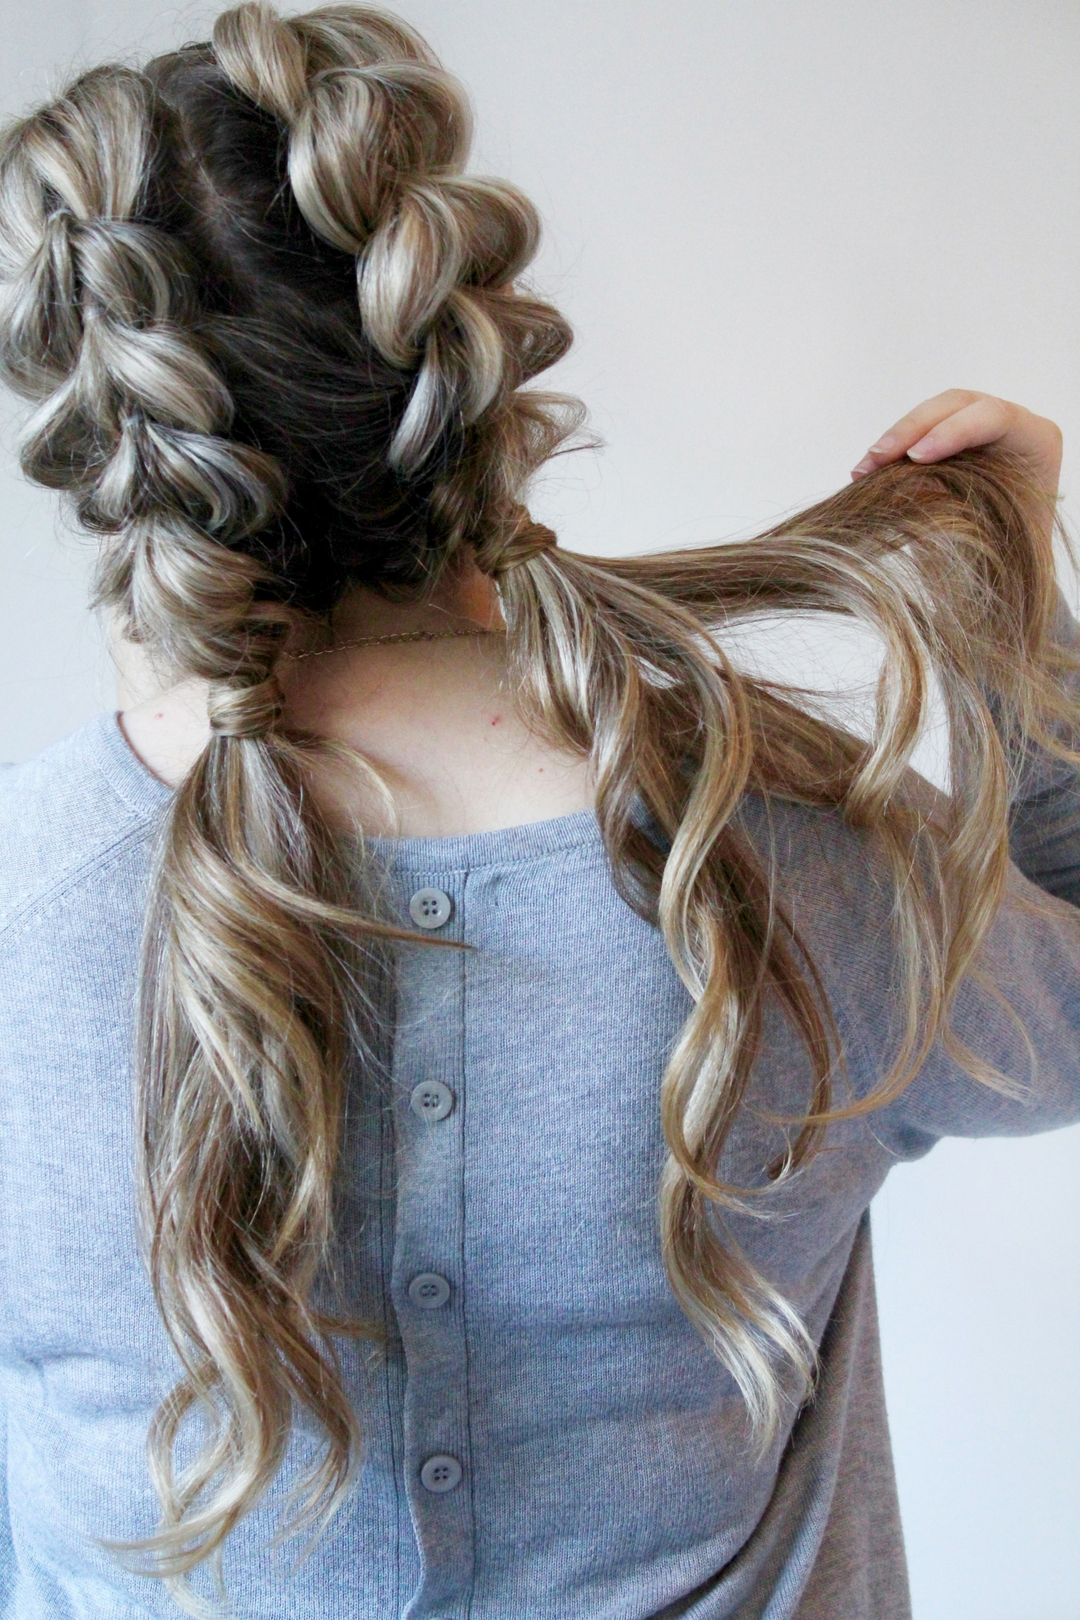 Pinterest With Regard To Best And Newest Pigtails Braids With Rings For Thin Hair (View 13 of 15)